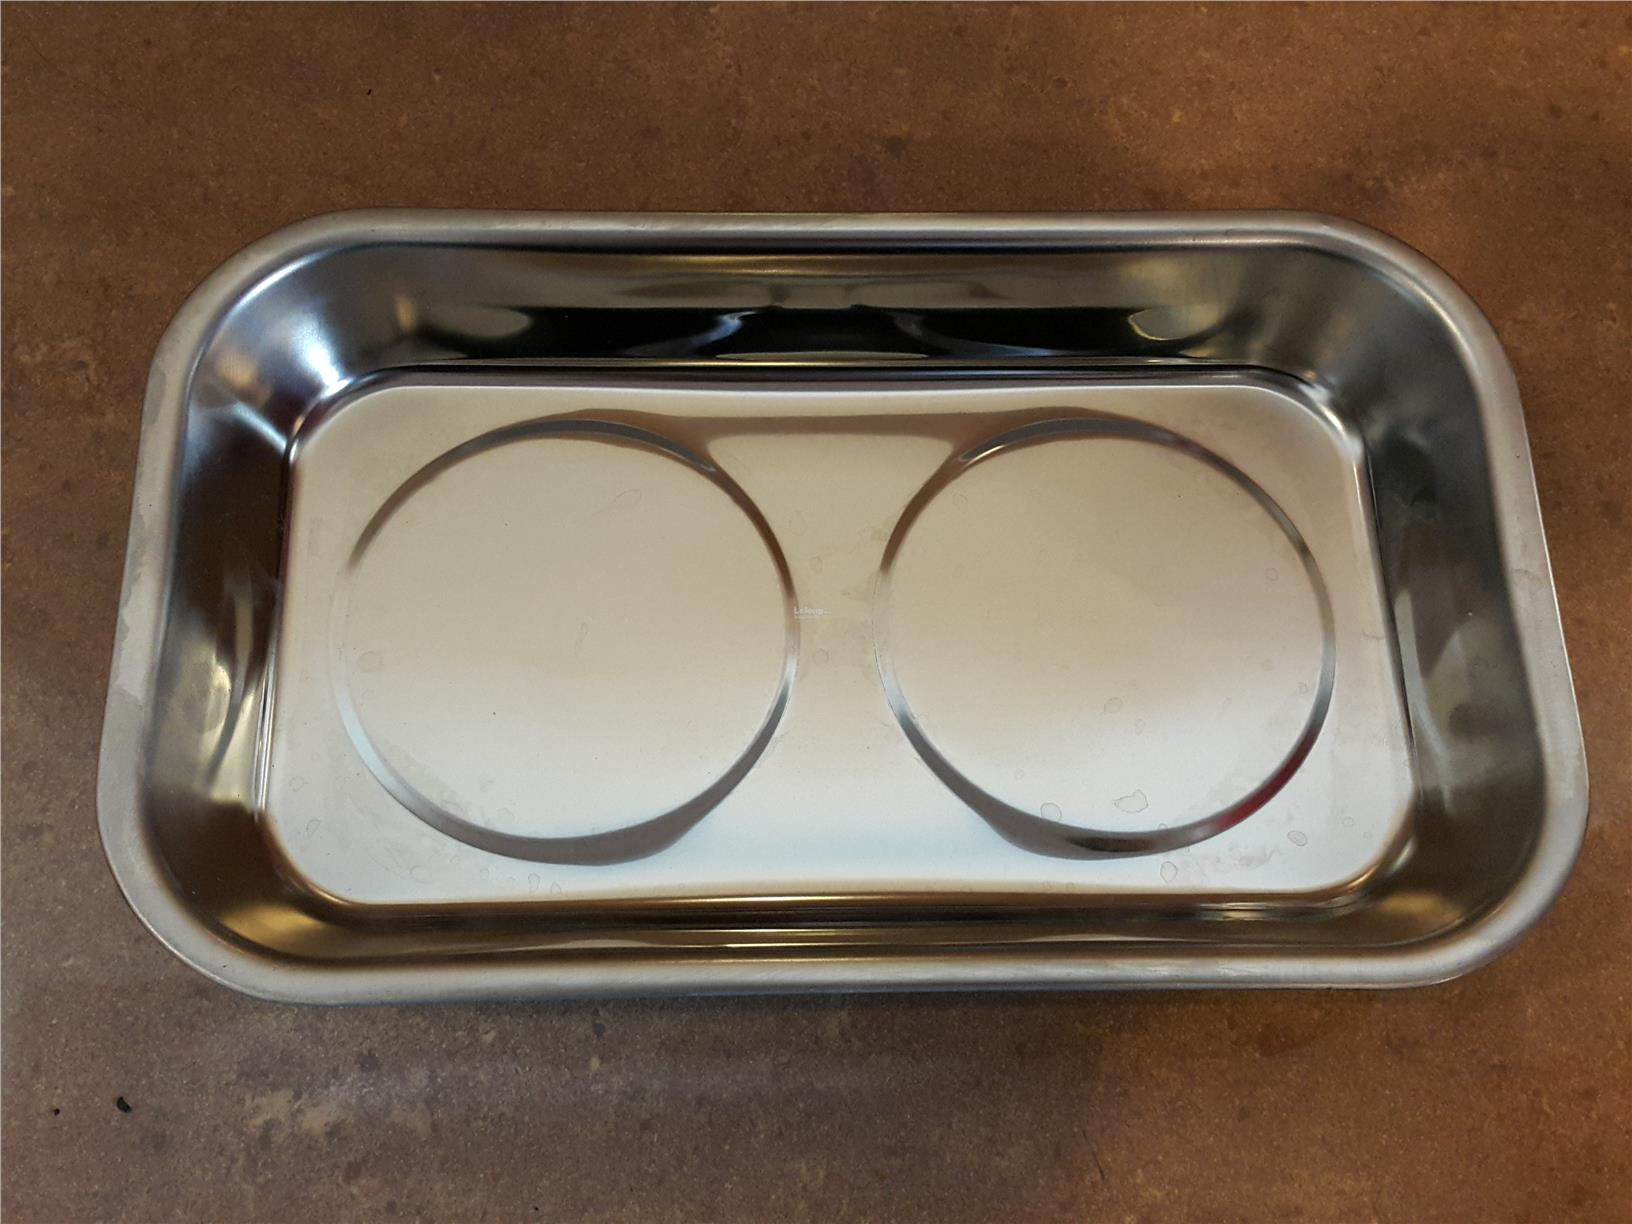 Stainless Steel Magnectic Tray ID885528 ID999399